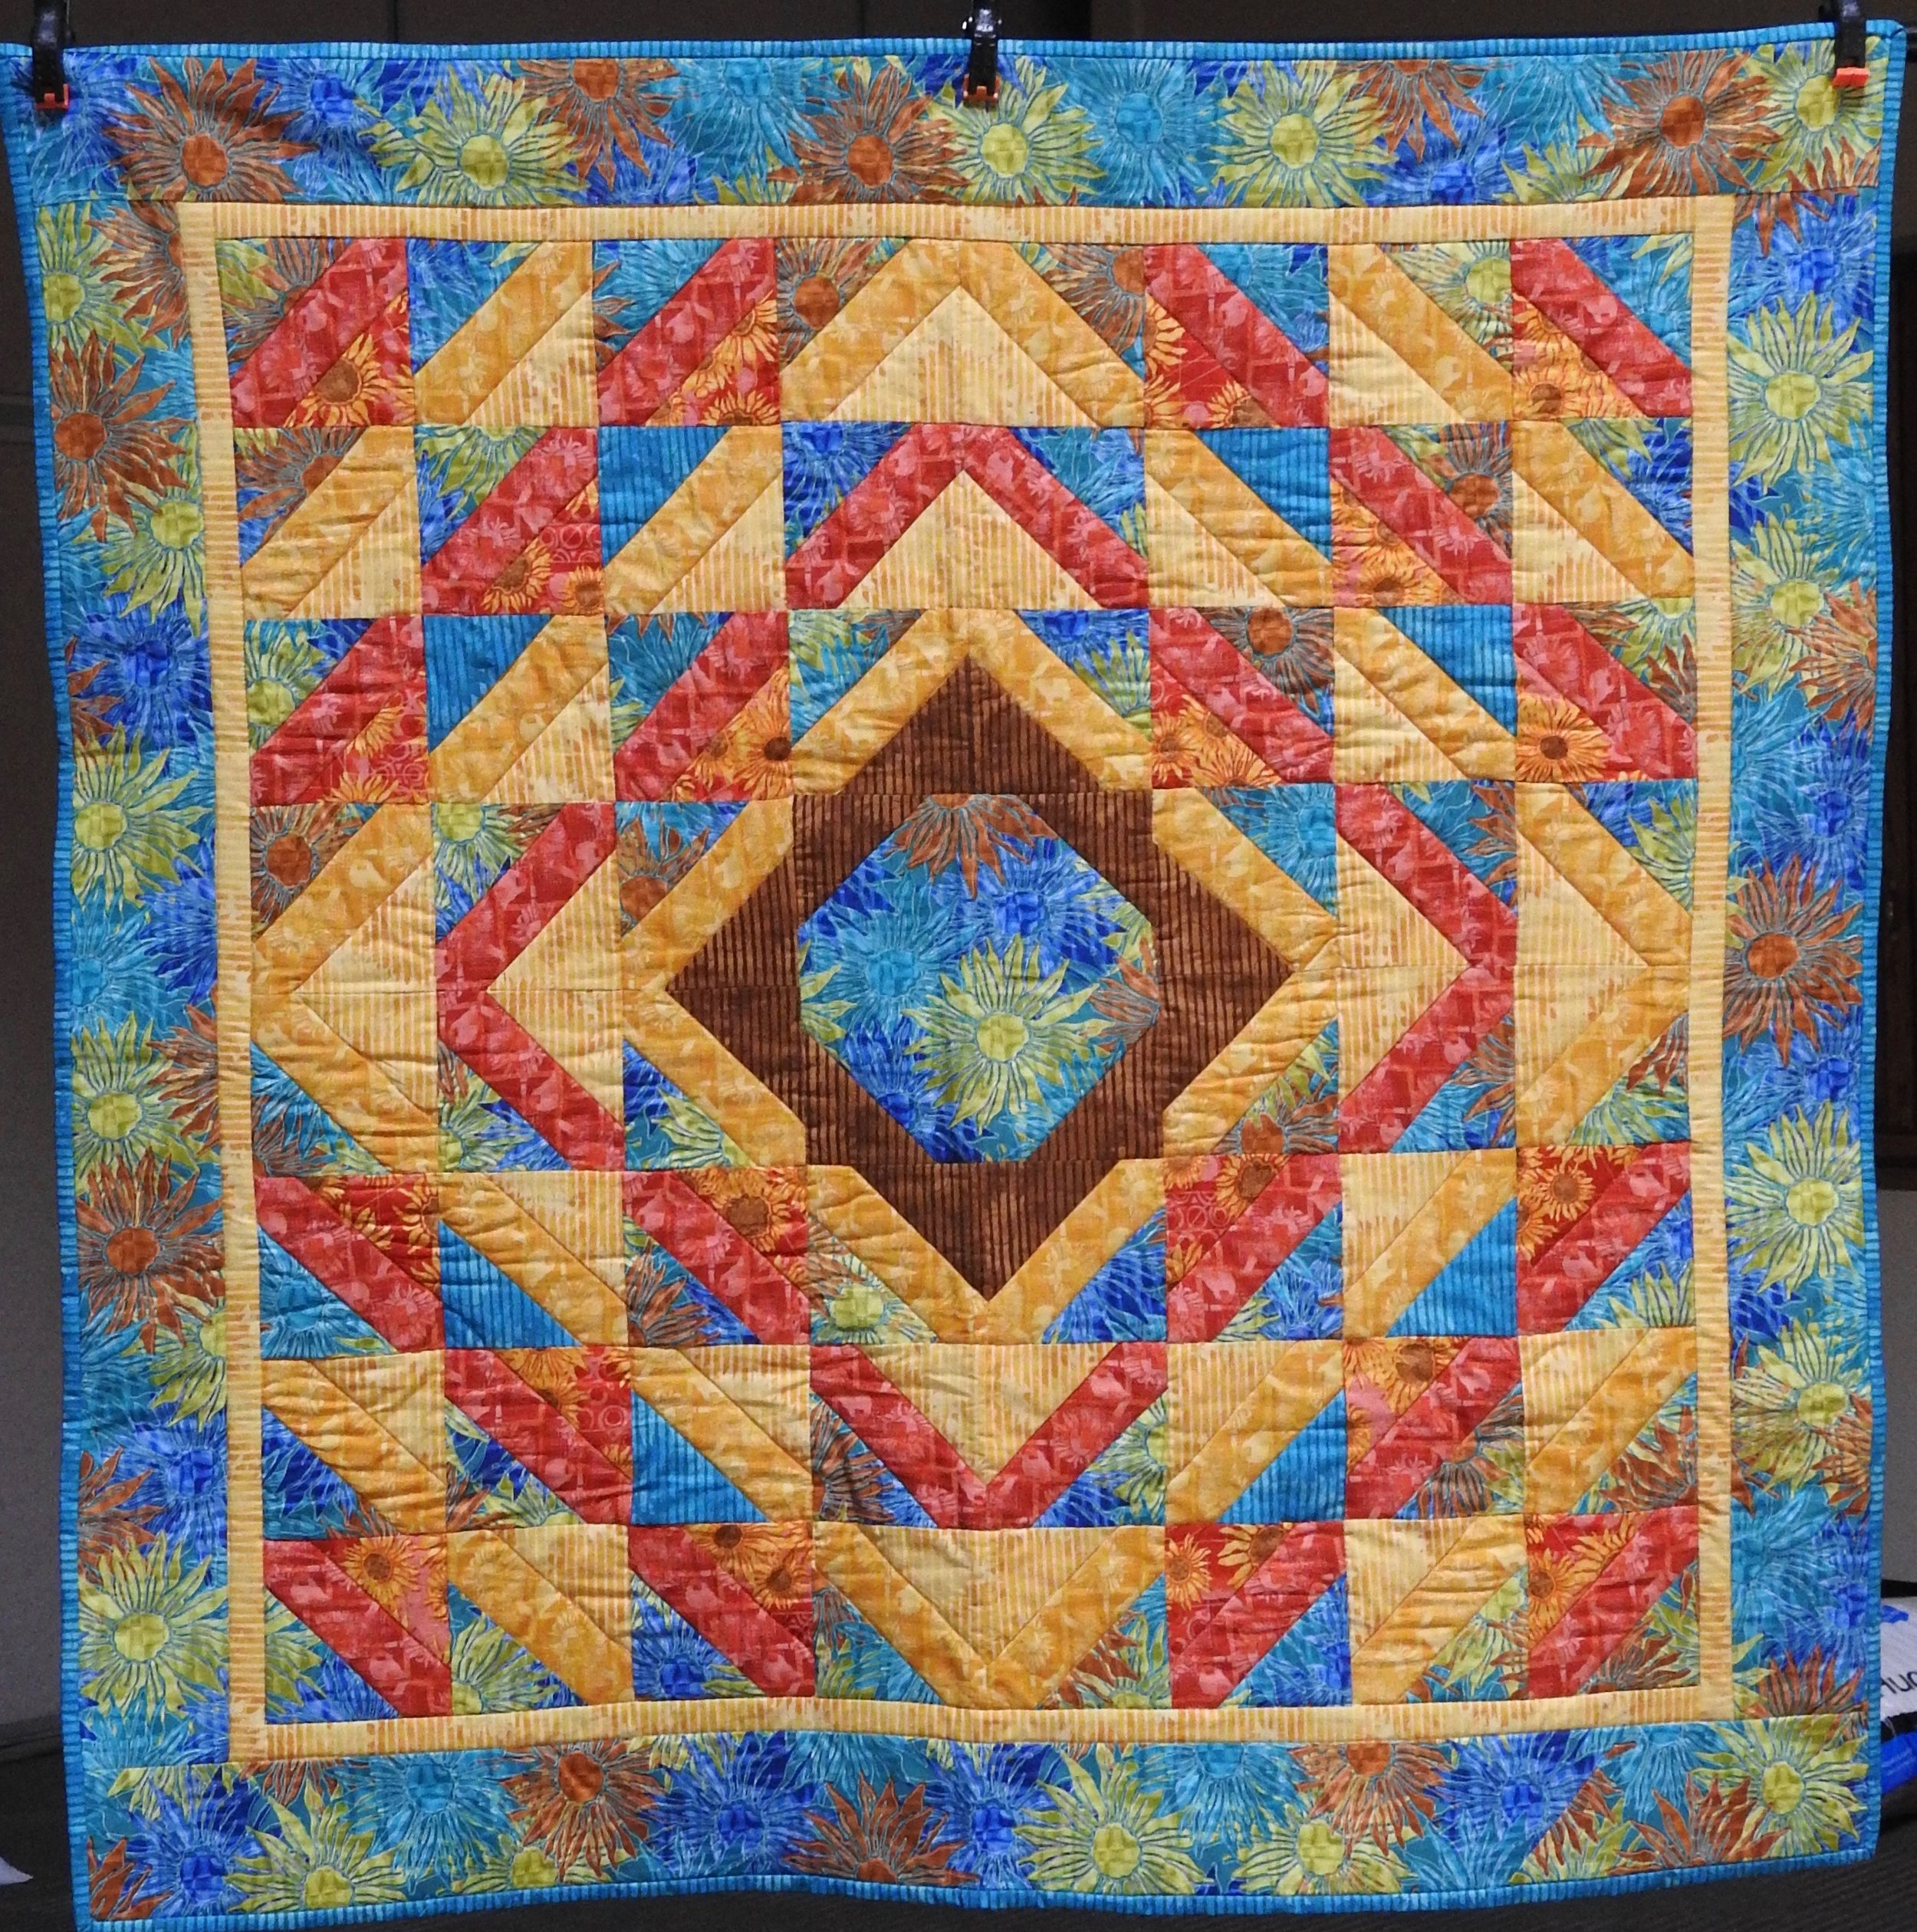 Southern Sunset, Pieced by Jean Mann Graber, Custom Machine Quilted, donated by The Cal Graber Family, 49 x 49""